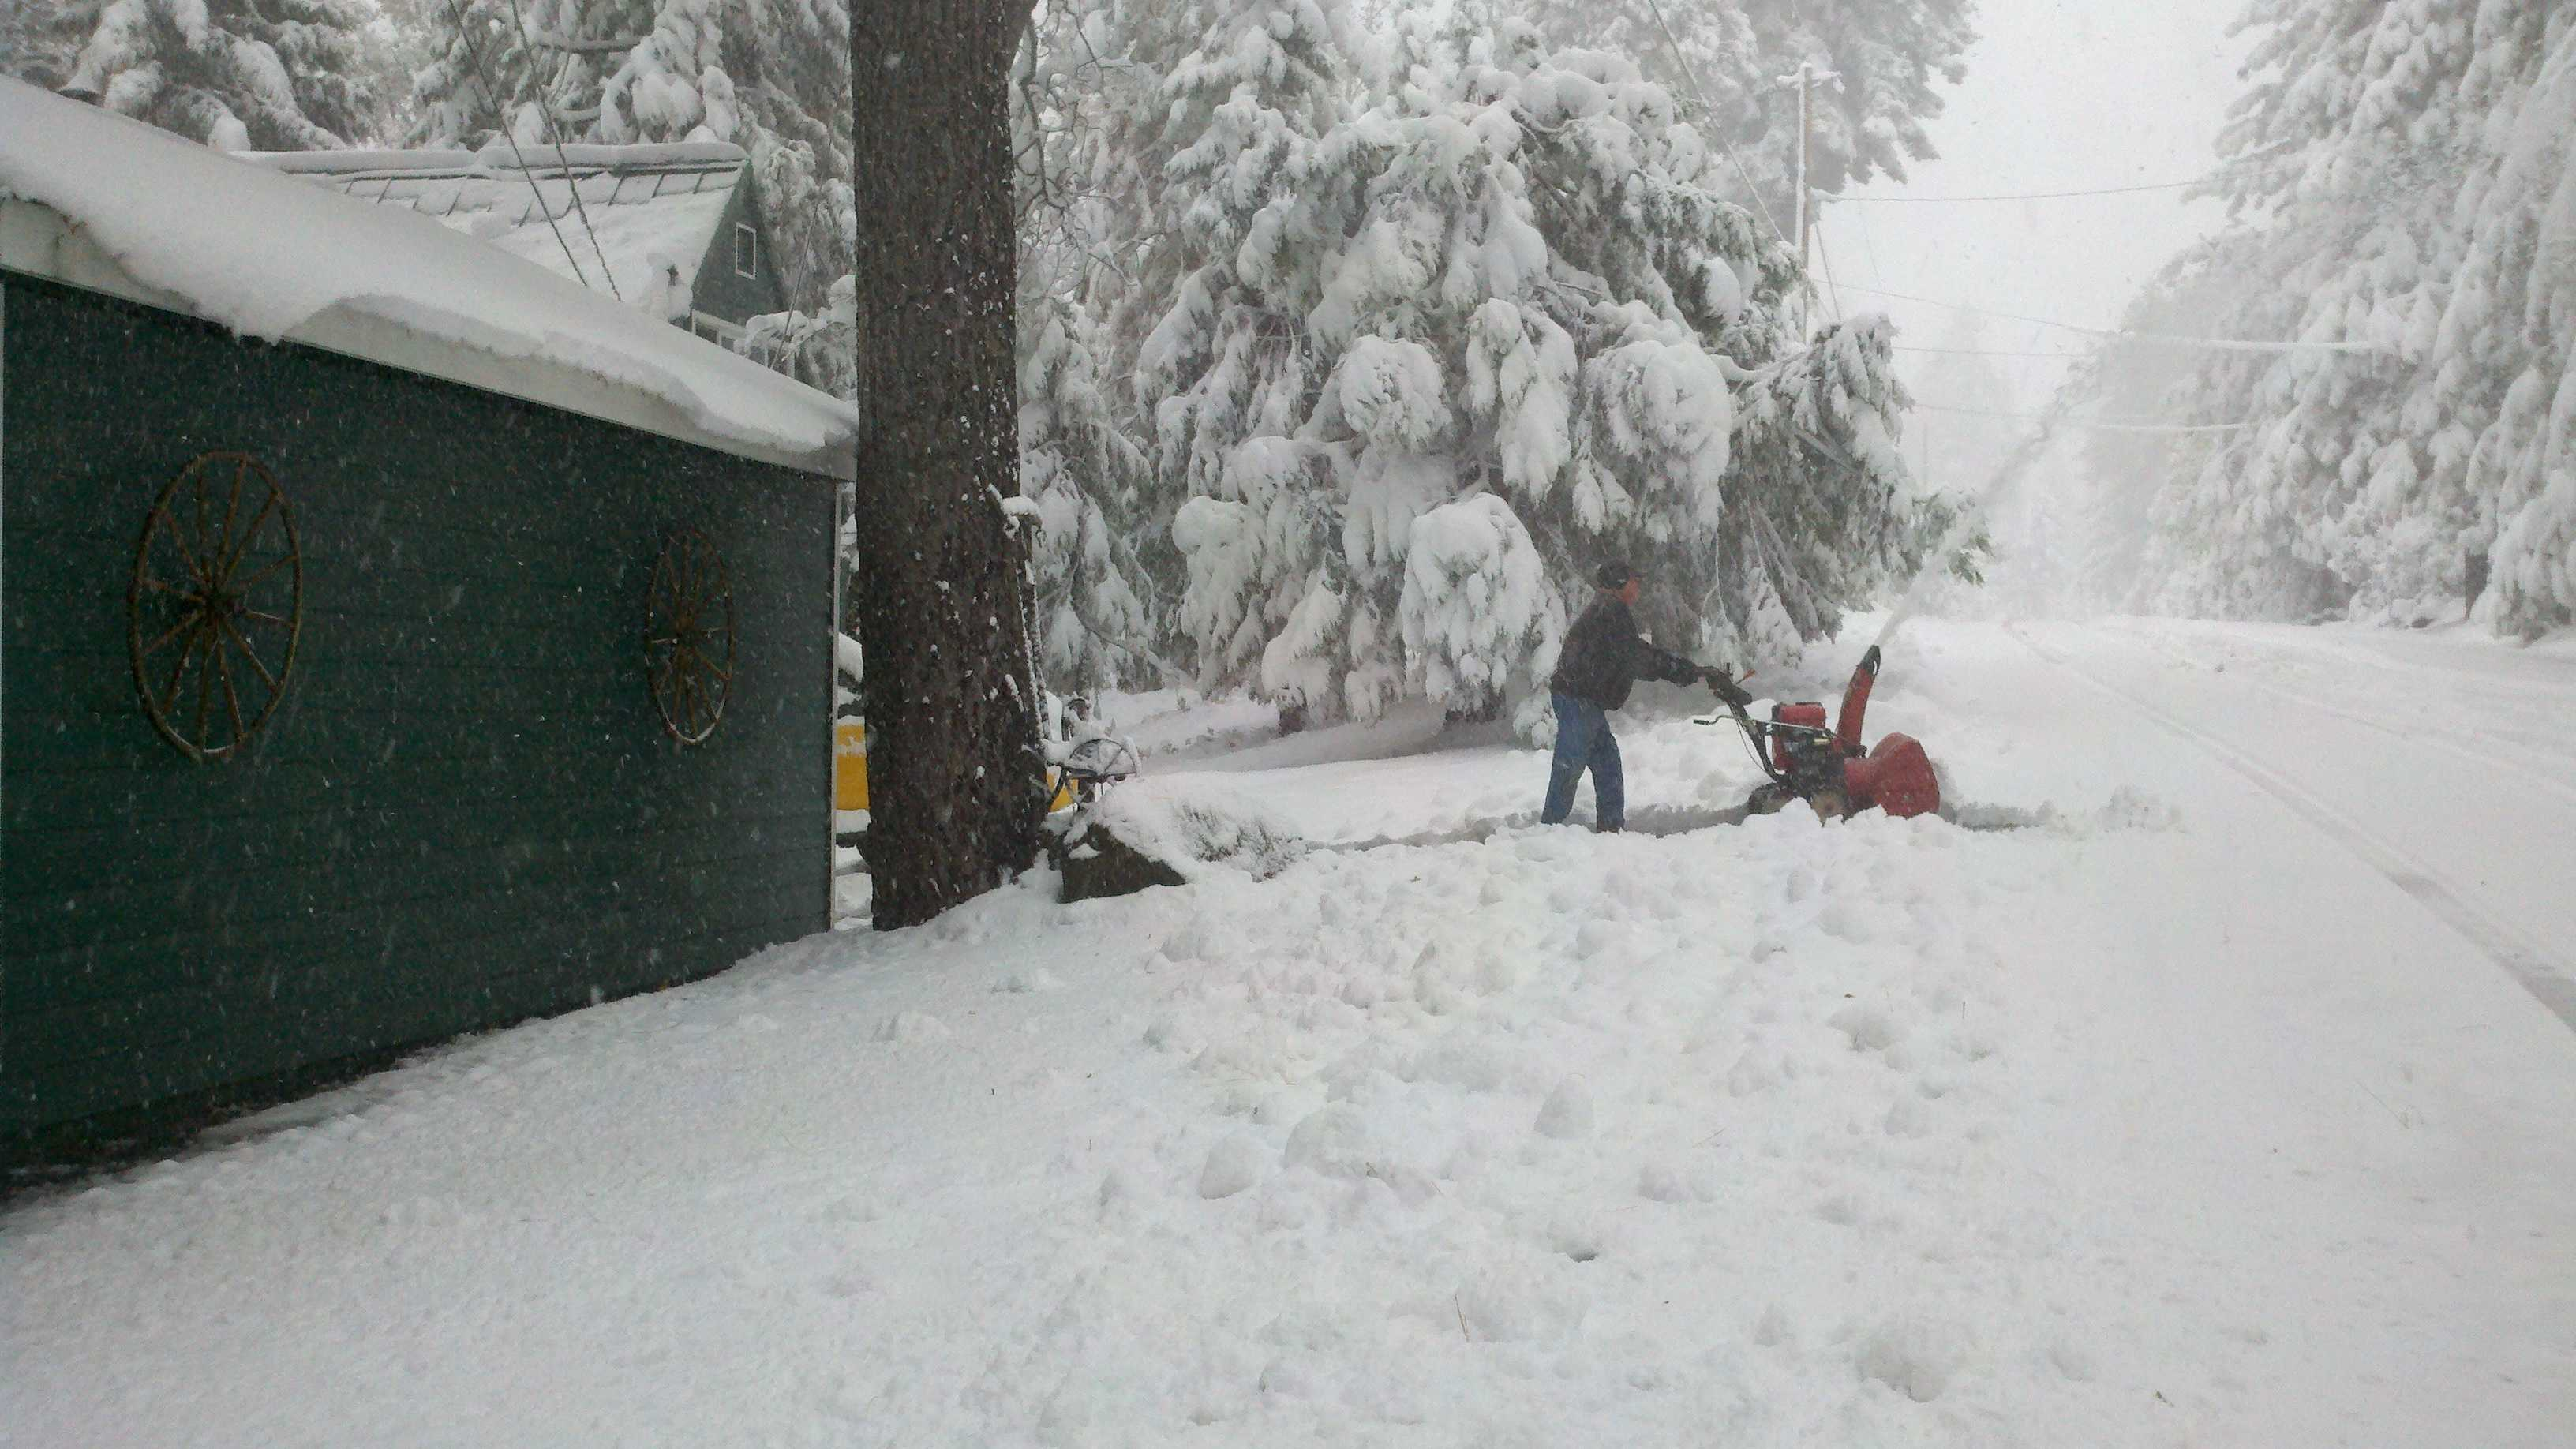 A resident in Blue Canyon clears snow early in the season.